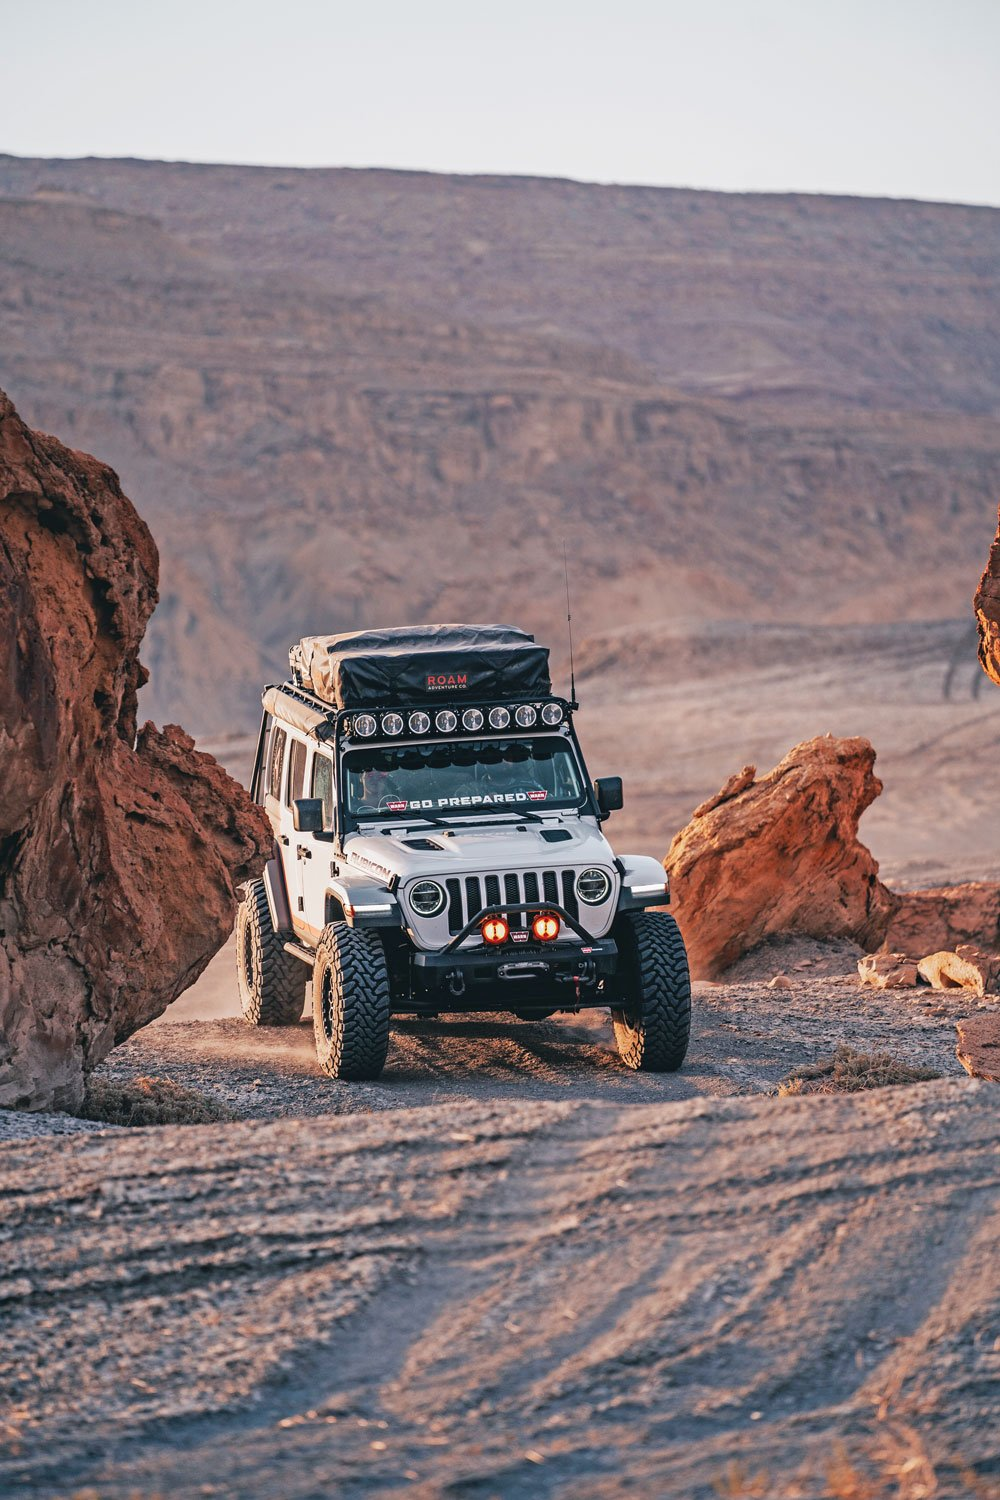 Jeep Wrangler JLU maneuvers easily in any terrain